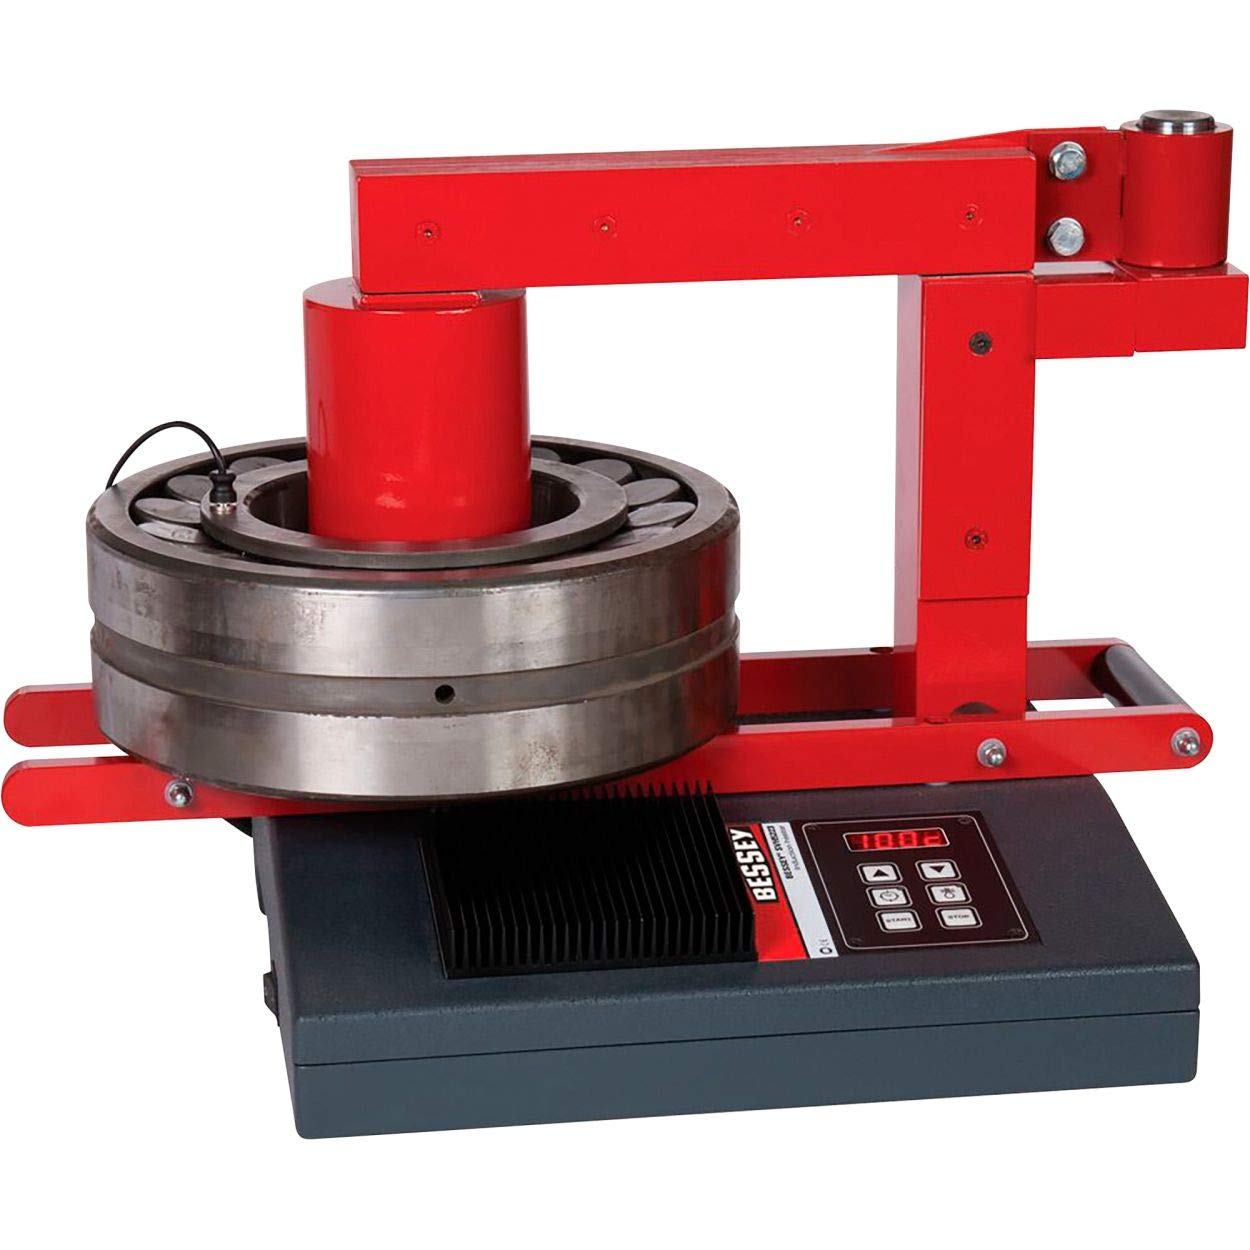 Bessey Tools Portable Induction Bearing Heater - Vertical/Horizontal, Model Number SVH5223